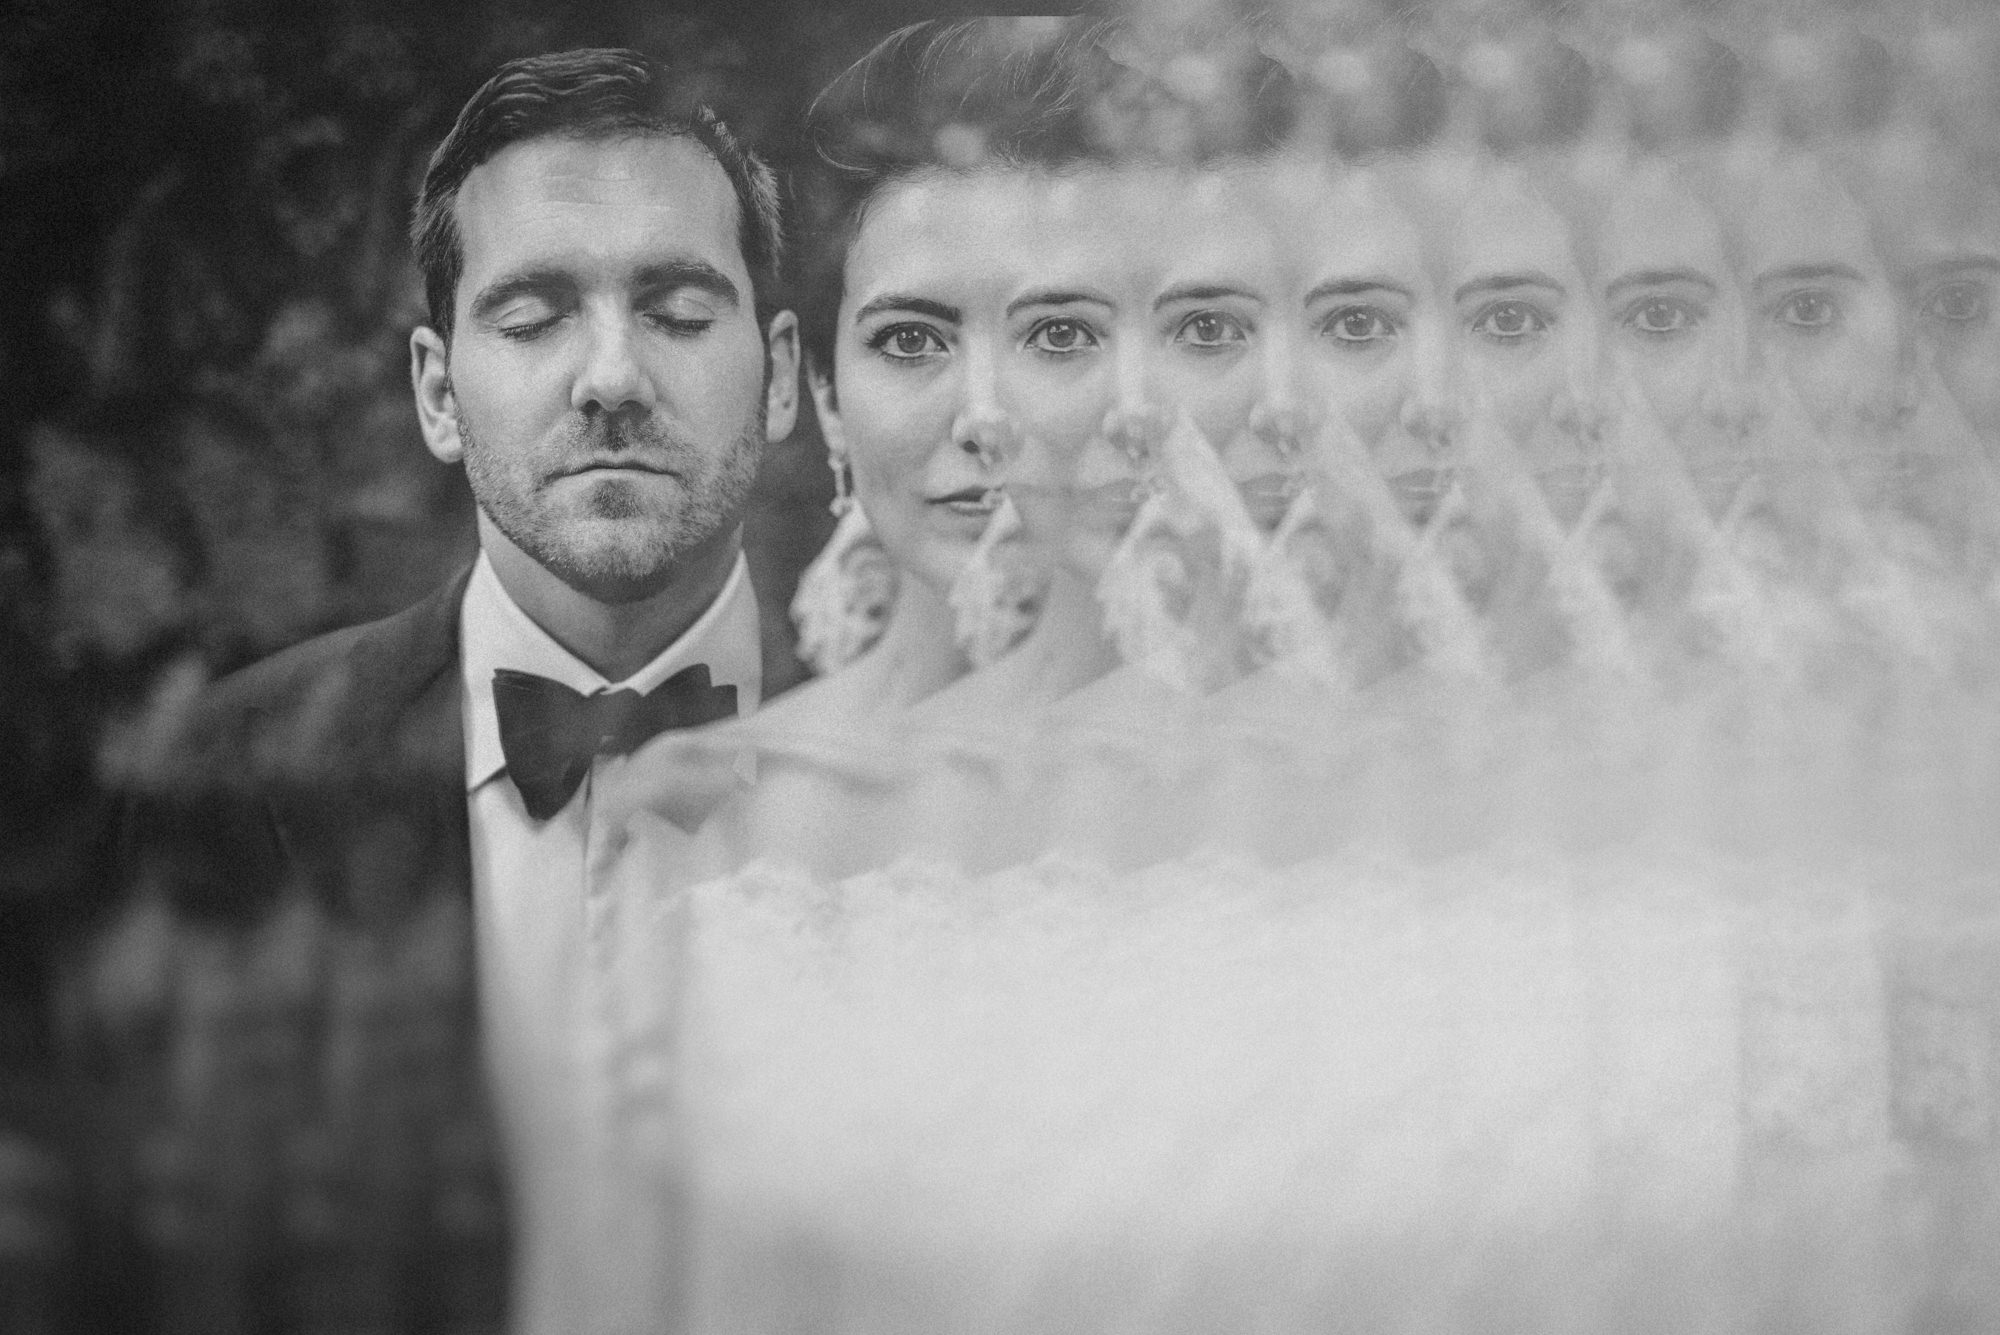 Back and white portrait of bride and groom taken through prism